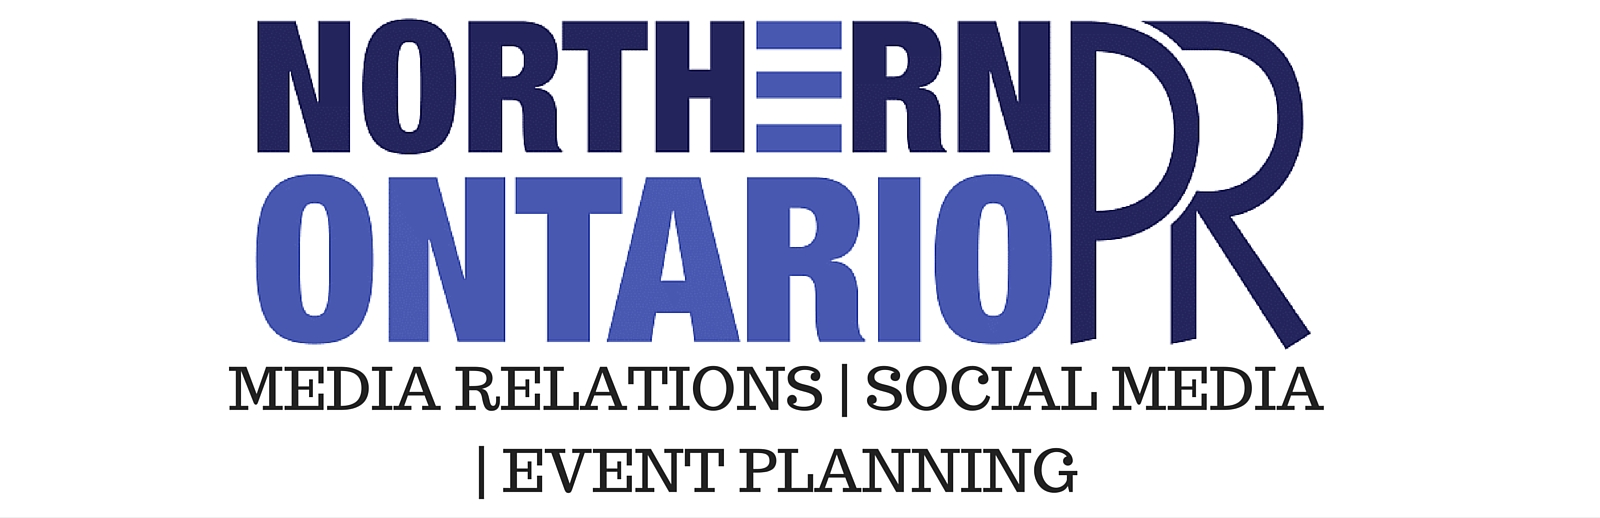 Northern Ontario PR Celebrates 1 Year